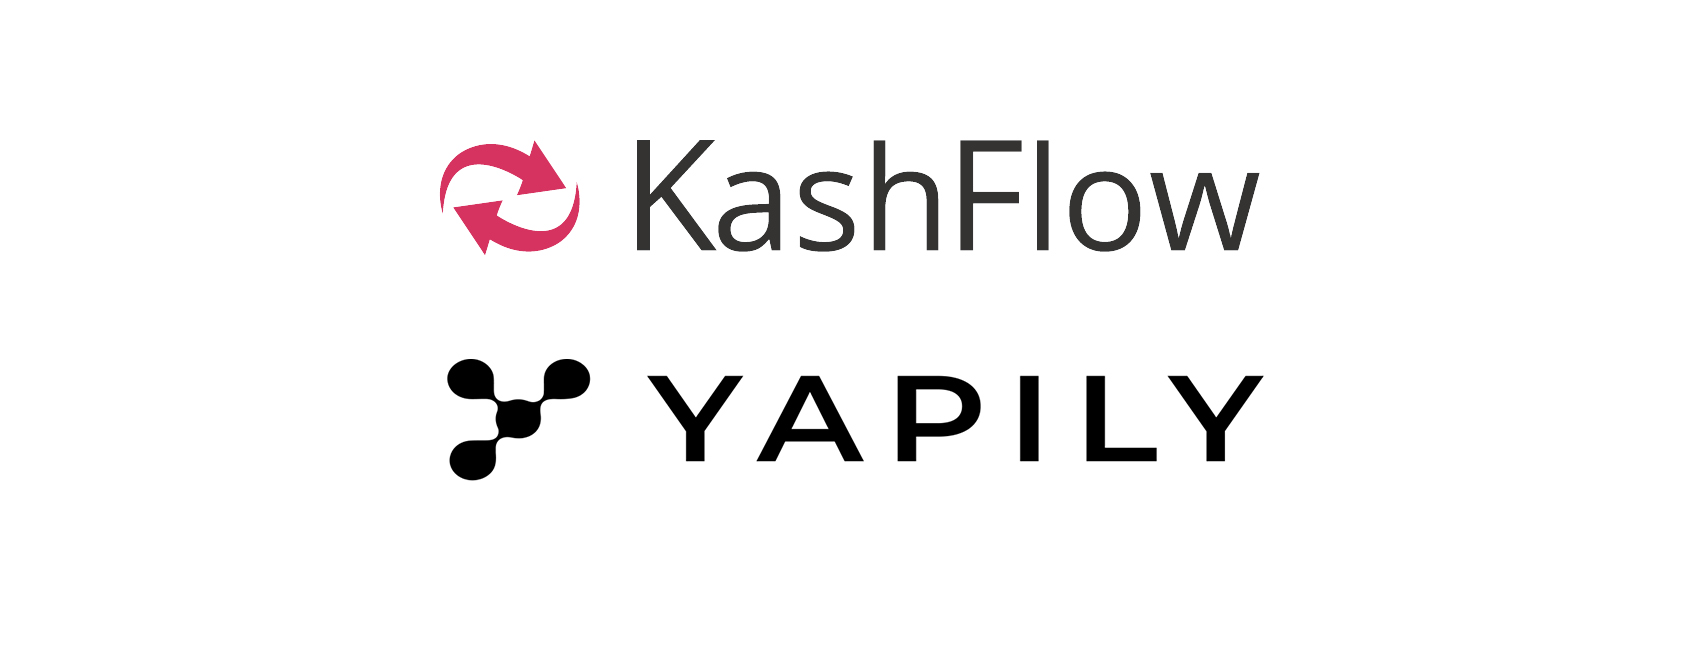 KashFlow and Yapily to Support SMEs with Digital Bookkeeping and Cash Flow Management